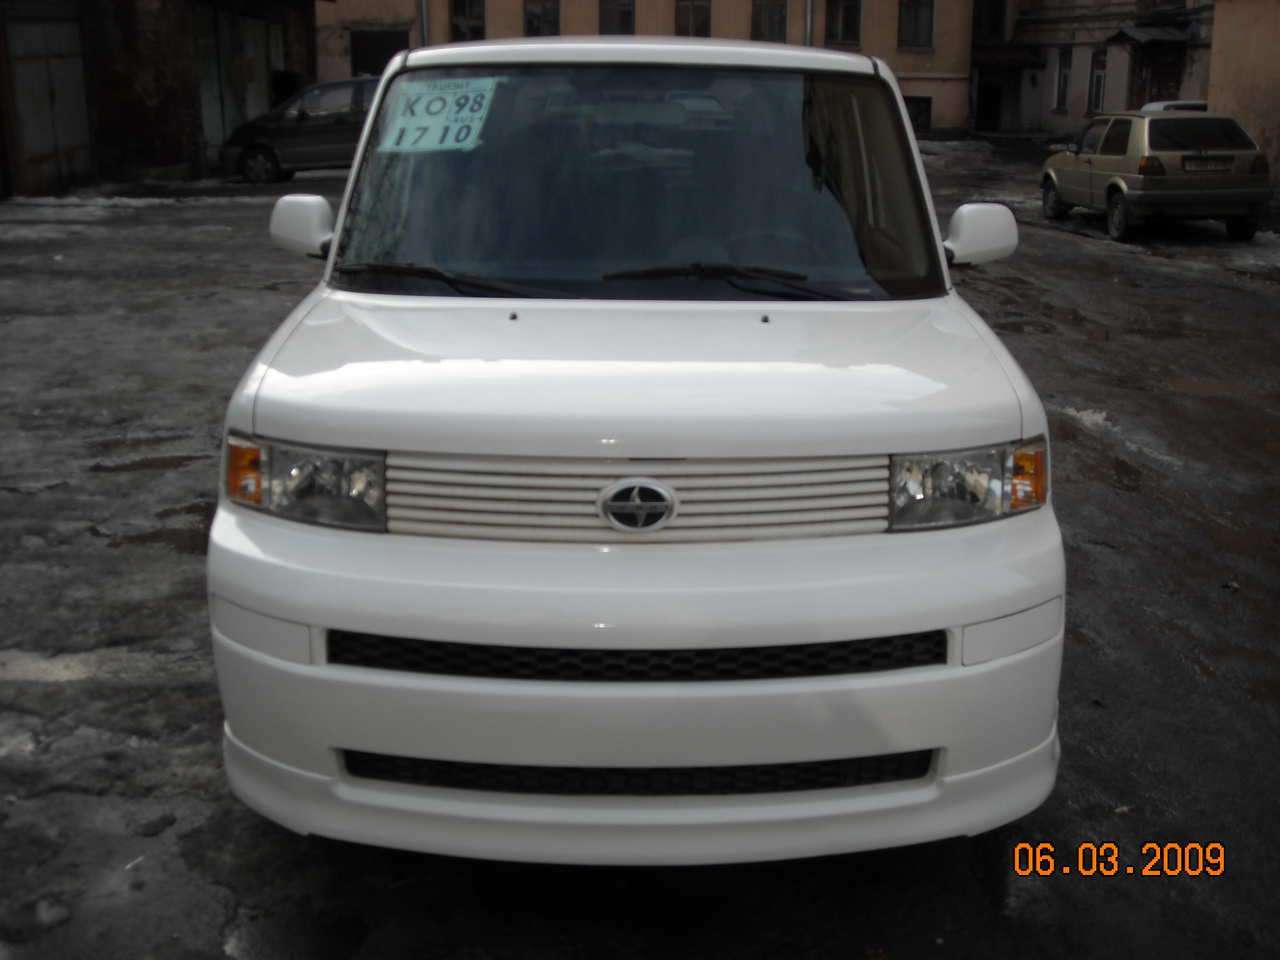 2004 scion xb used cars for sale carsforsalecom autos weblog. Black Bedroom Furniture Sets. Home Design Ideas